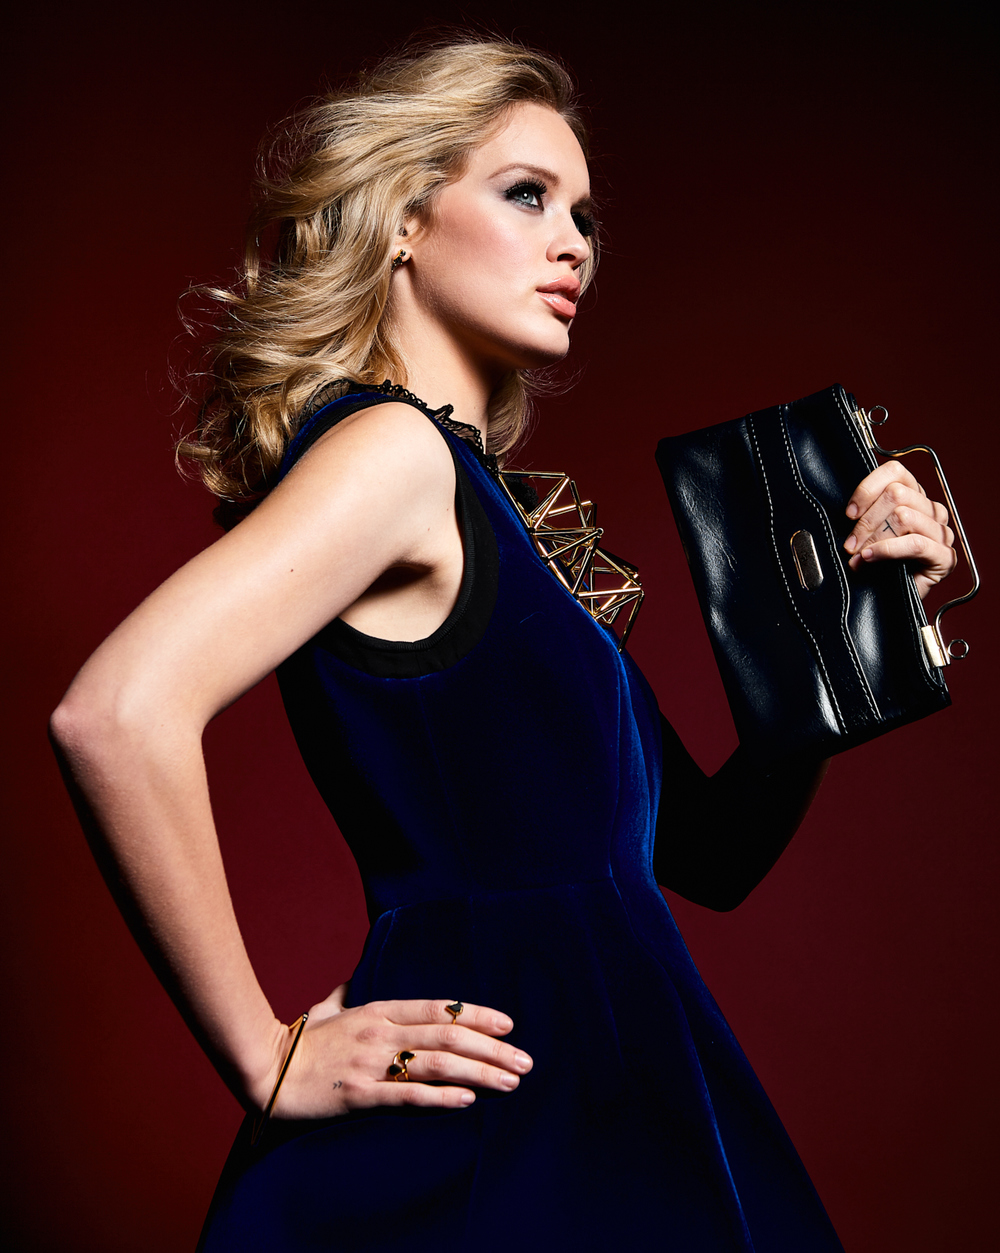 Vancouver Canadian Fashion Photographer Red Haute B.jpg